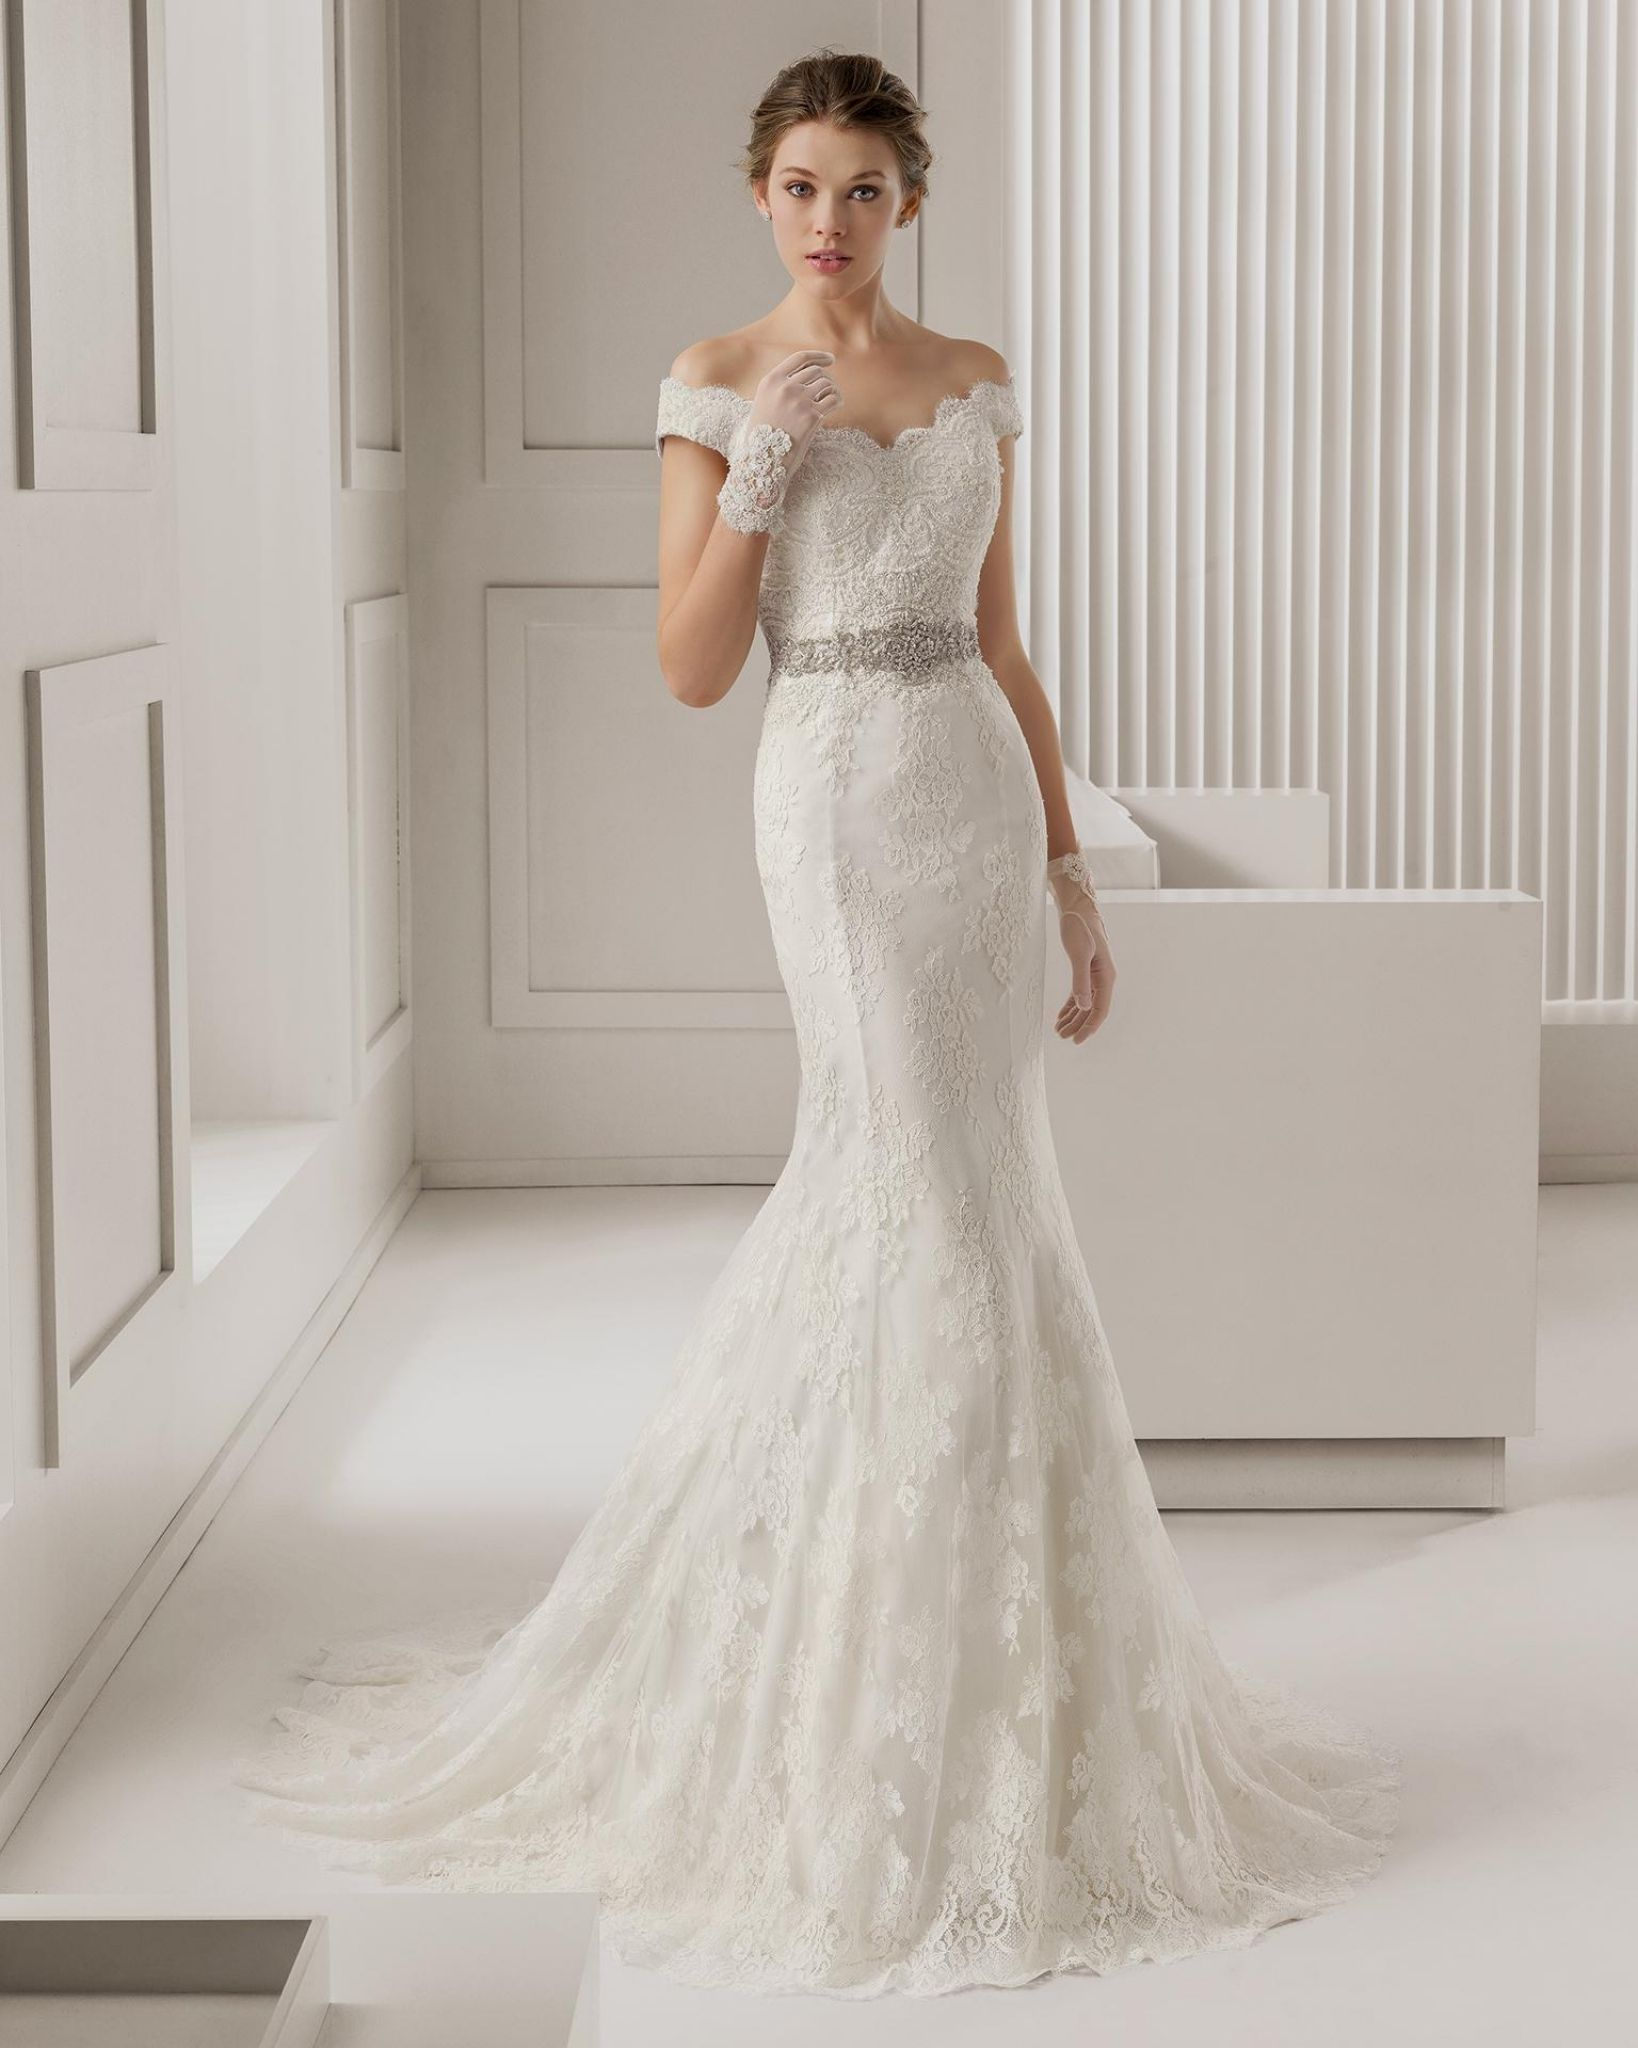 Wedding Dress Off The Shoulder Lace   Dressy Dresses For Weddings Check  More At Http: